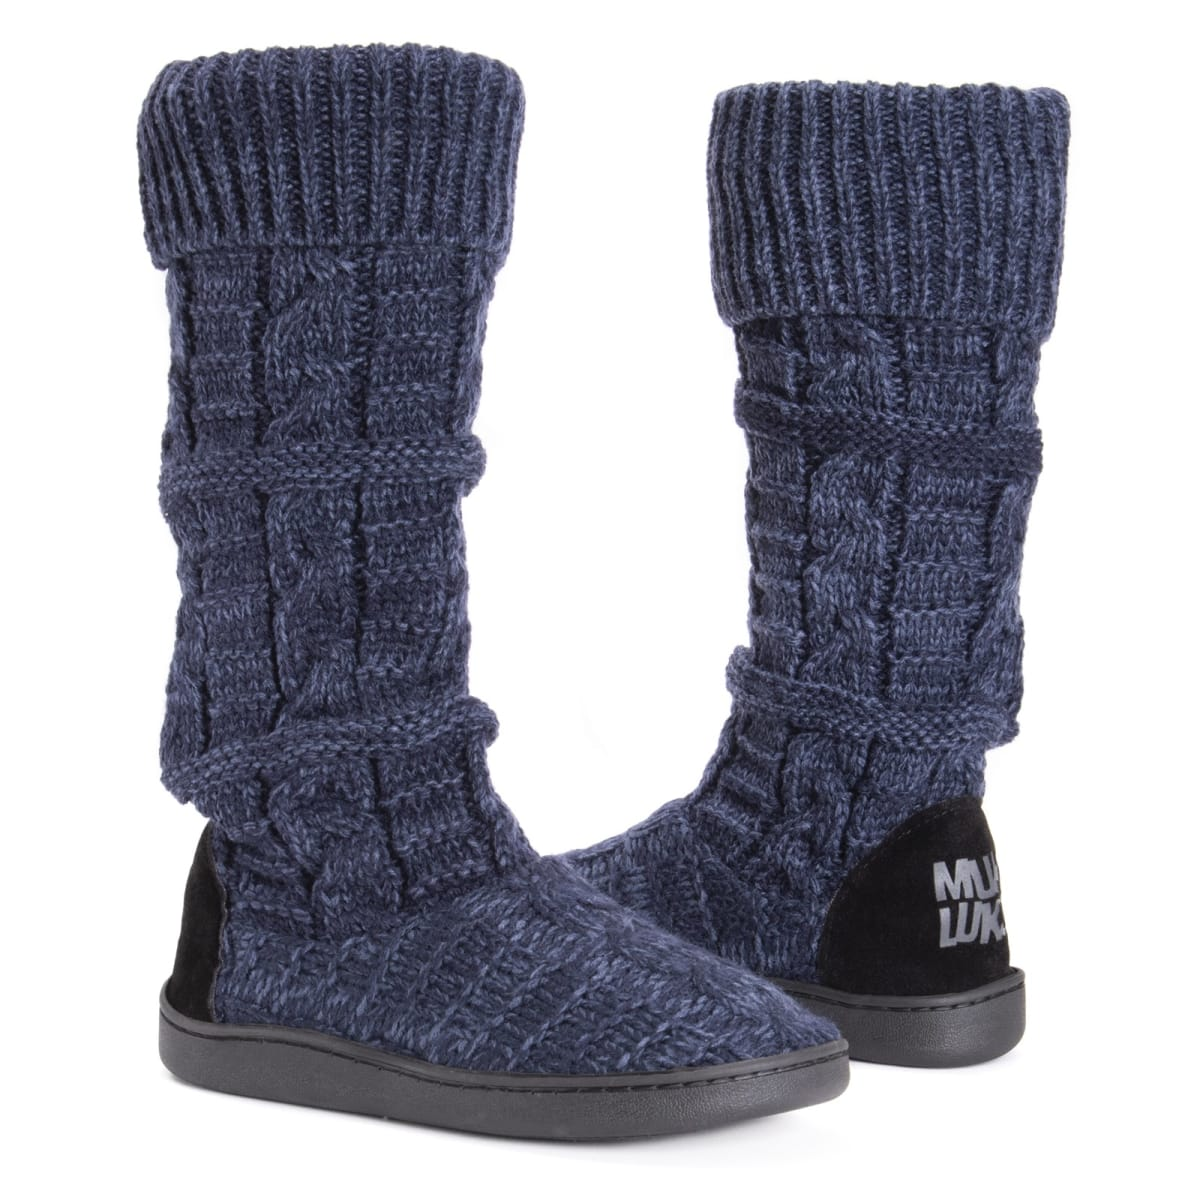 a516e801edd 56%You save. 0 00 00Time Left. Expired. MUK LUKS® Women s Shelly Slippers  ...